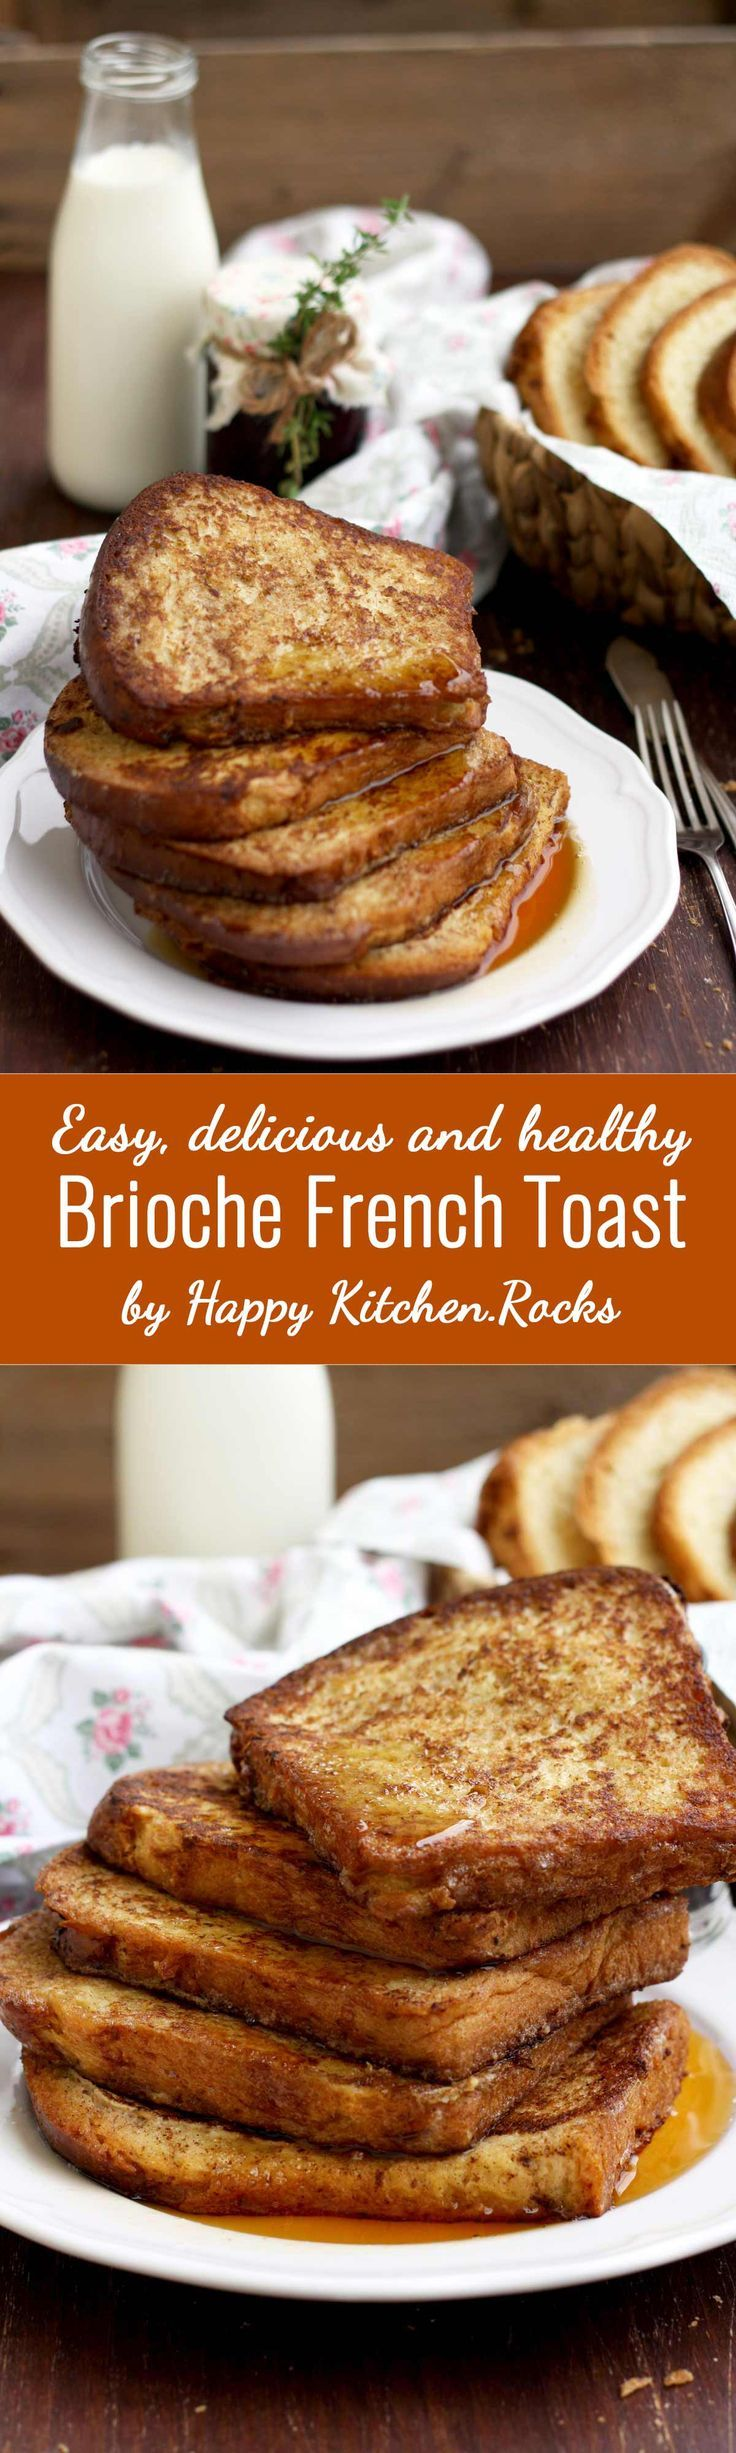 This healthy brioche French toast recipe is super easy and quick to make. Delicious and luscious breakfast or brunch idea for holidays or lazy Sundays! Make it for your Christmas brunch and impress everyone!: